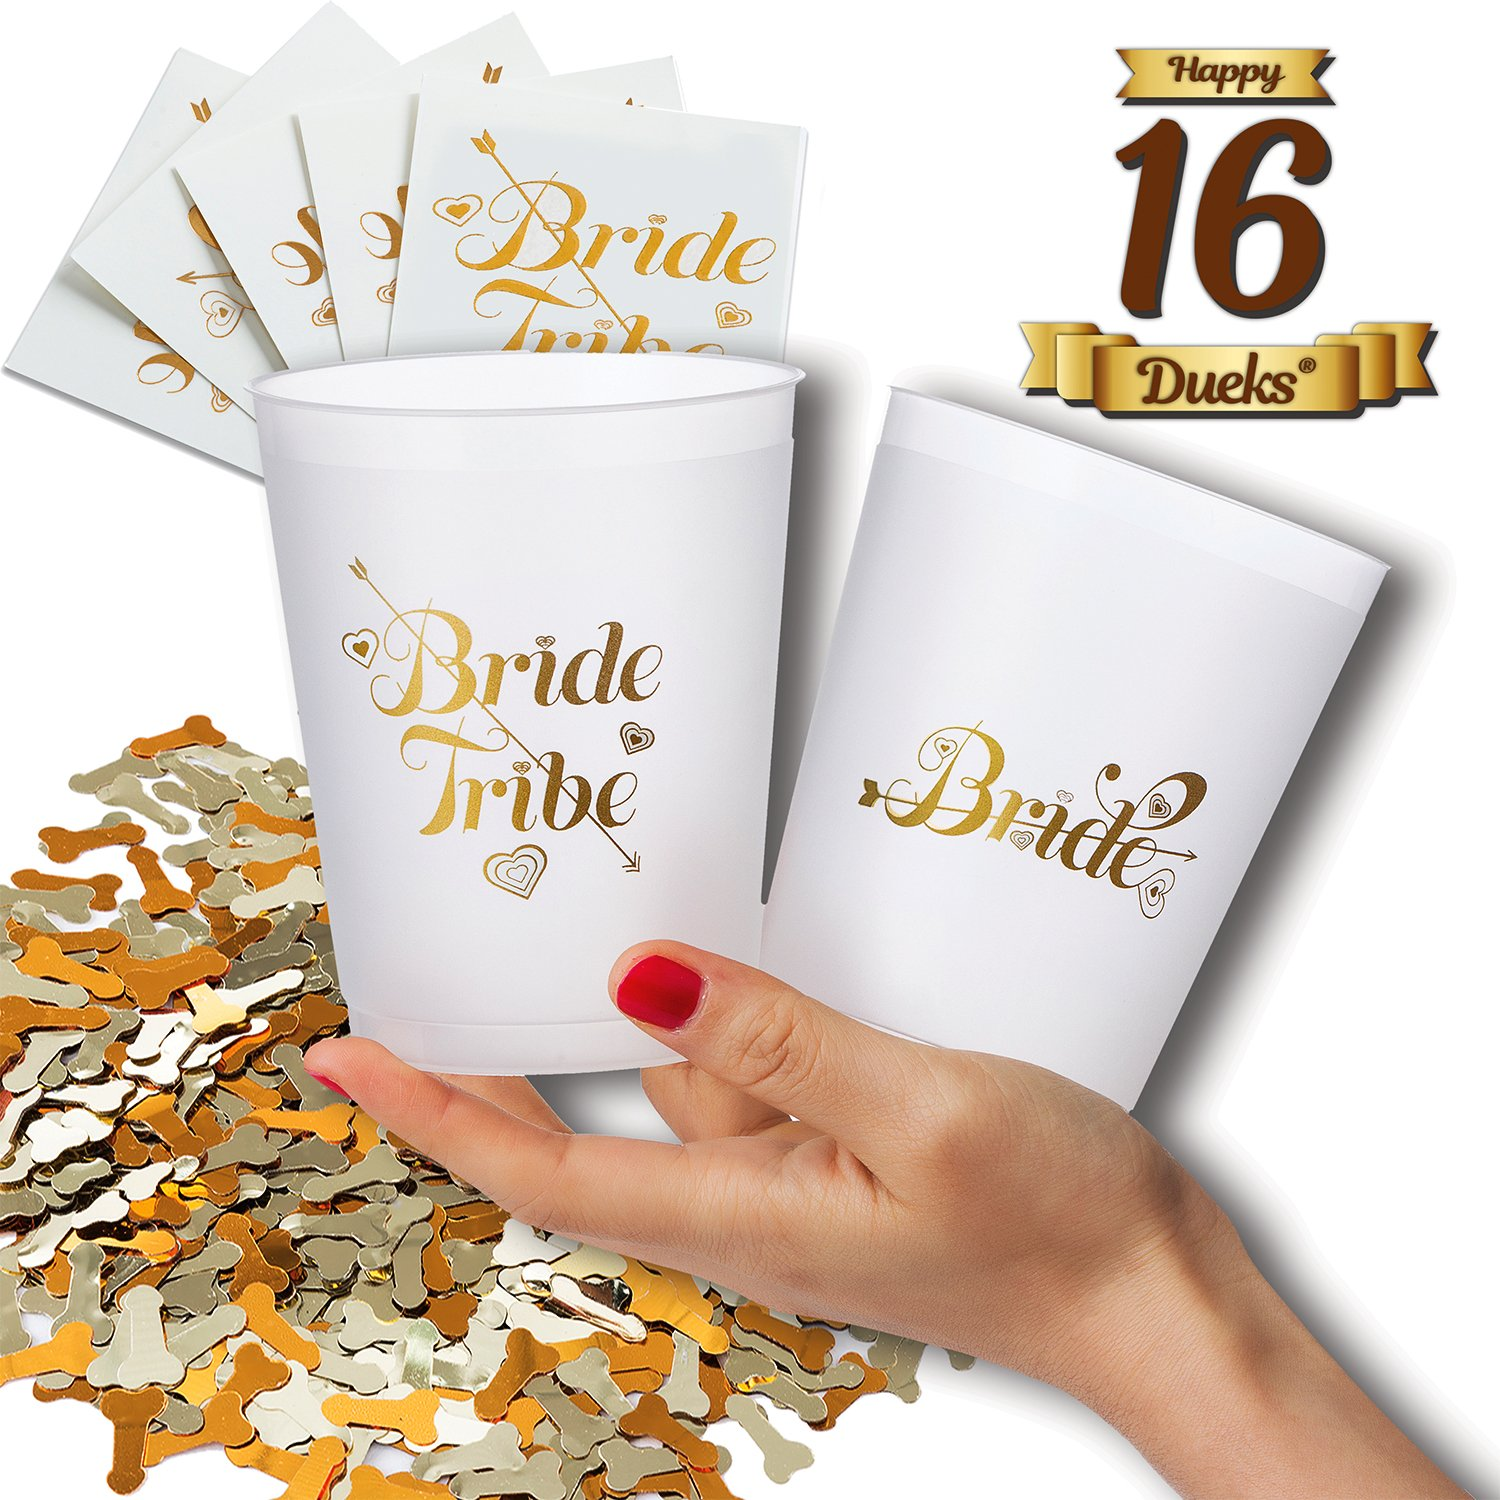 Bachelorette Party Bride and Bride Tribe Cups,16-oz Plastic Printed Cocktail Glasses & Metallic Confetti & 5 Bonus Tattoos-Fun Supply Kit for Hen Party/Bridal Shower/Girls Night,Cold Drinks/Beverages